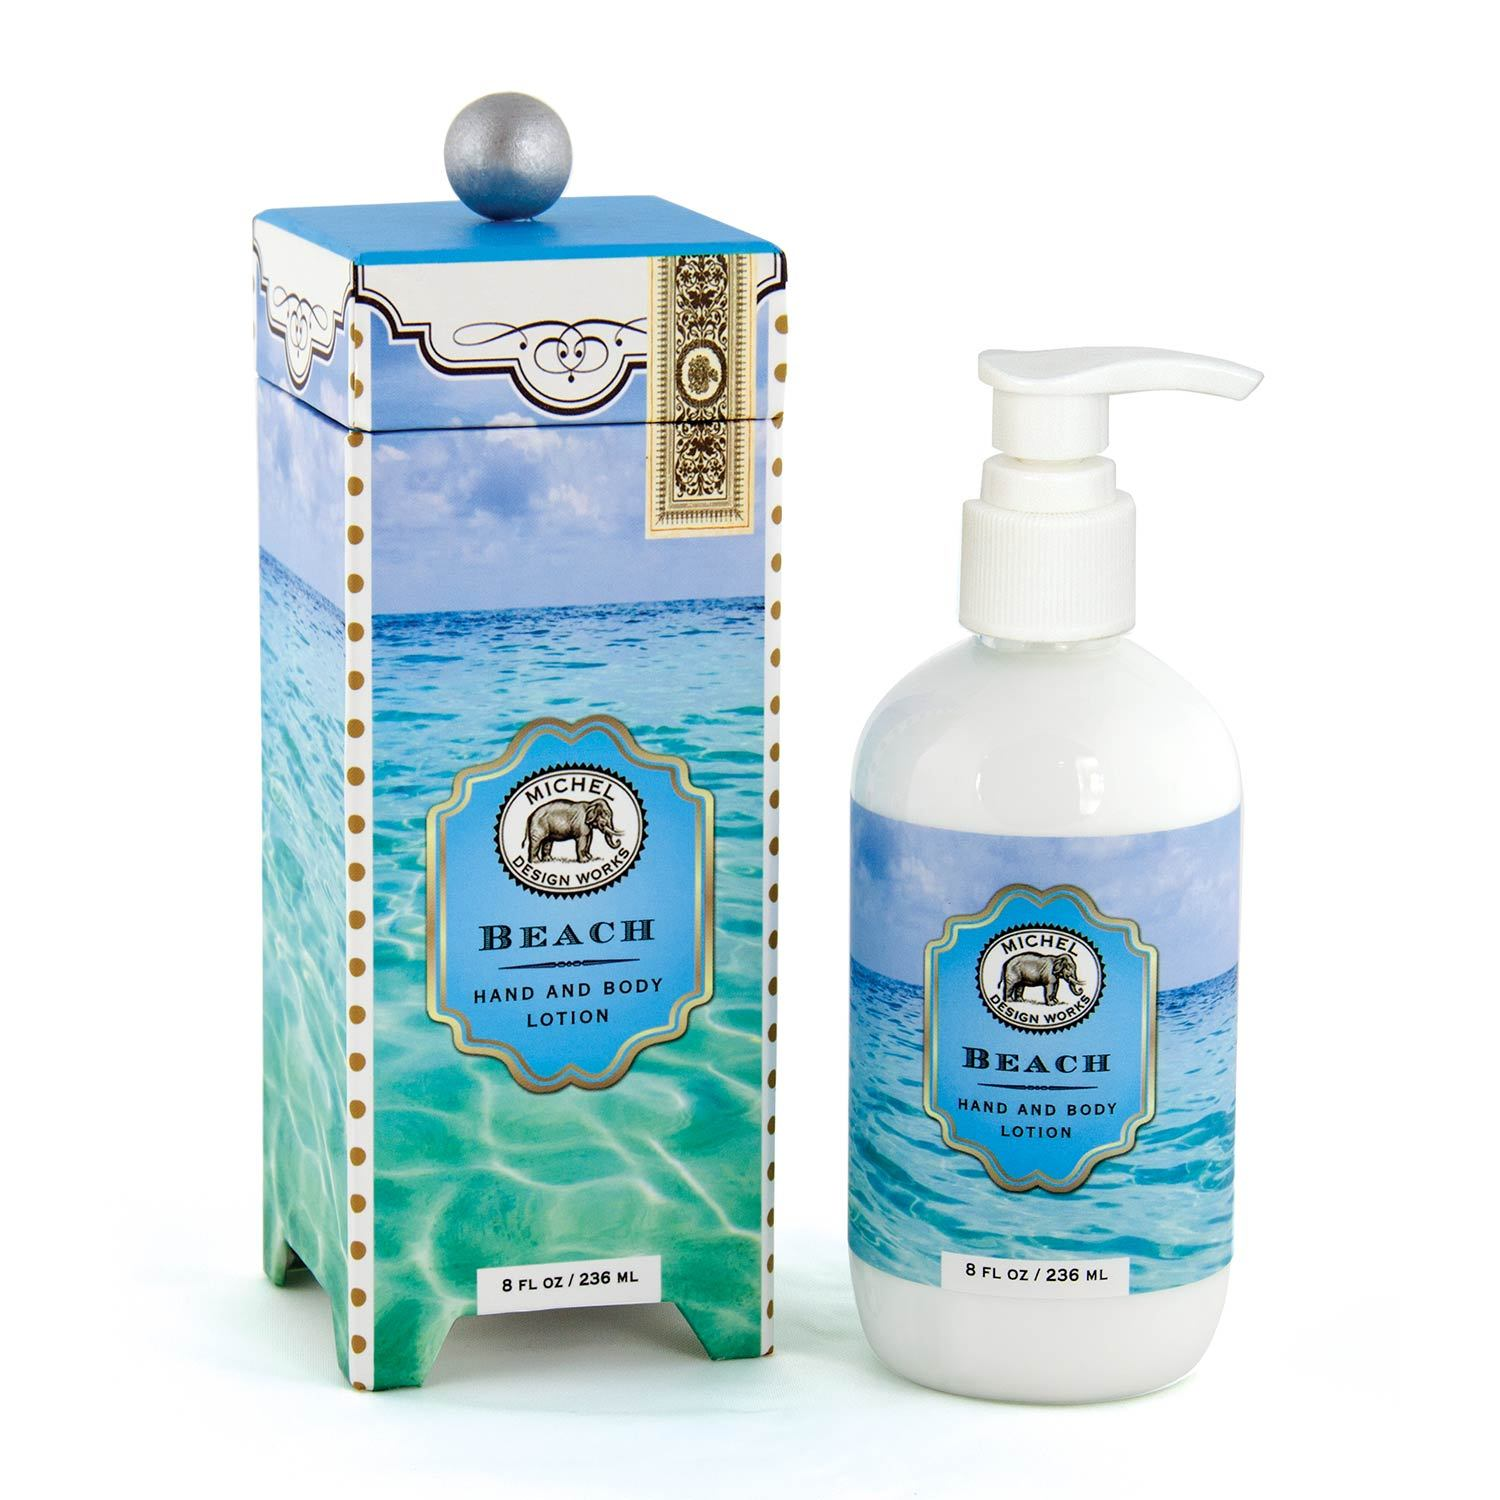 BEACH HAND AND BODY LOTION LOT189 - Molly's! A Chic and Unique Boutique